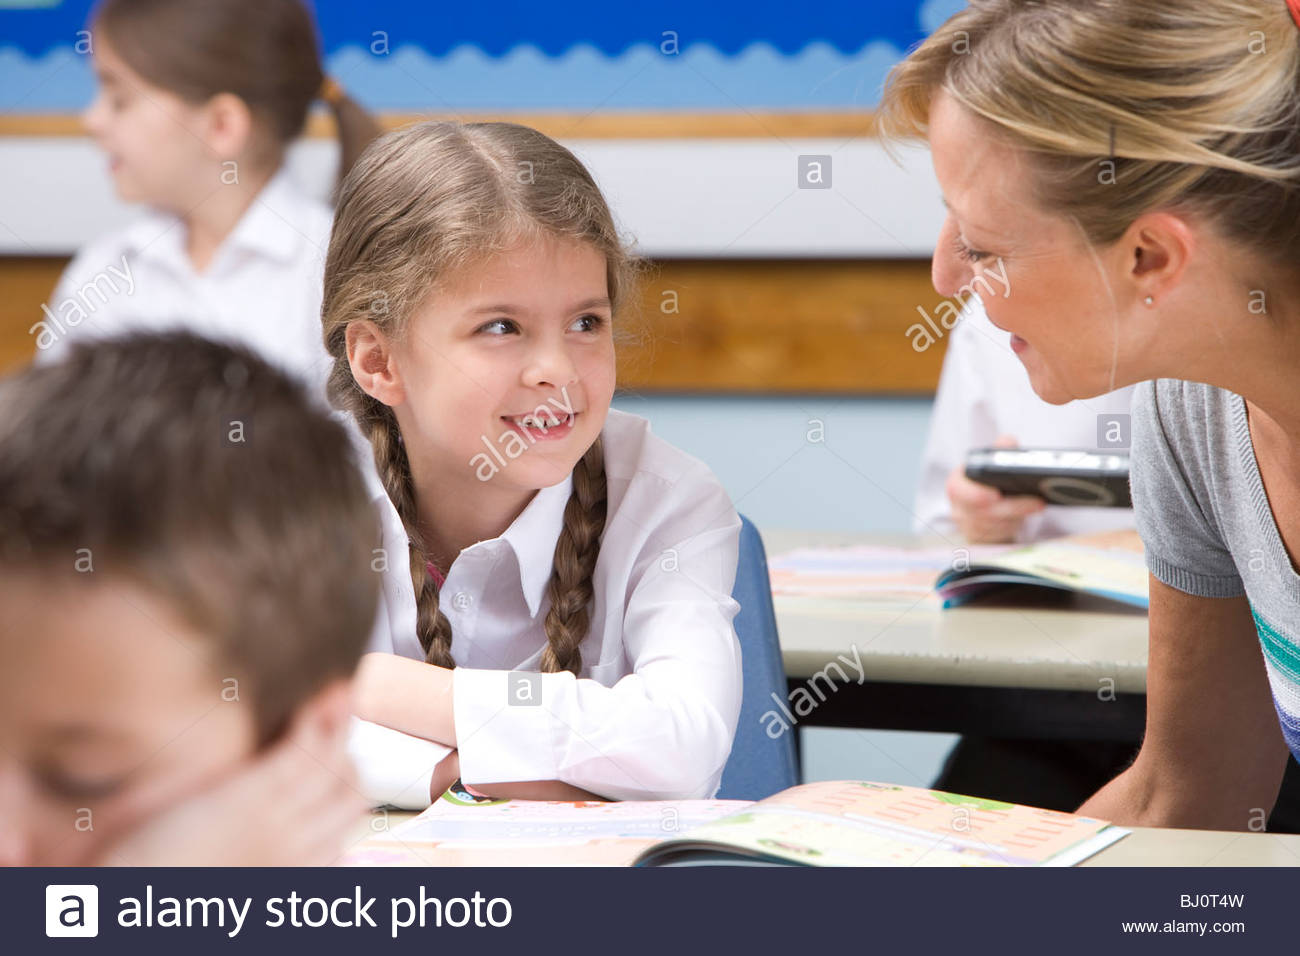 Teacher helping student with studies in classroom - Stock Image